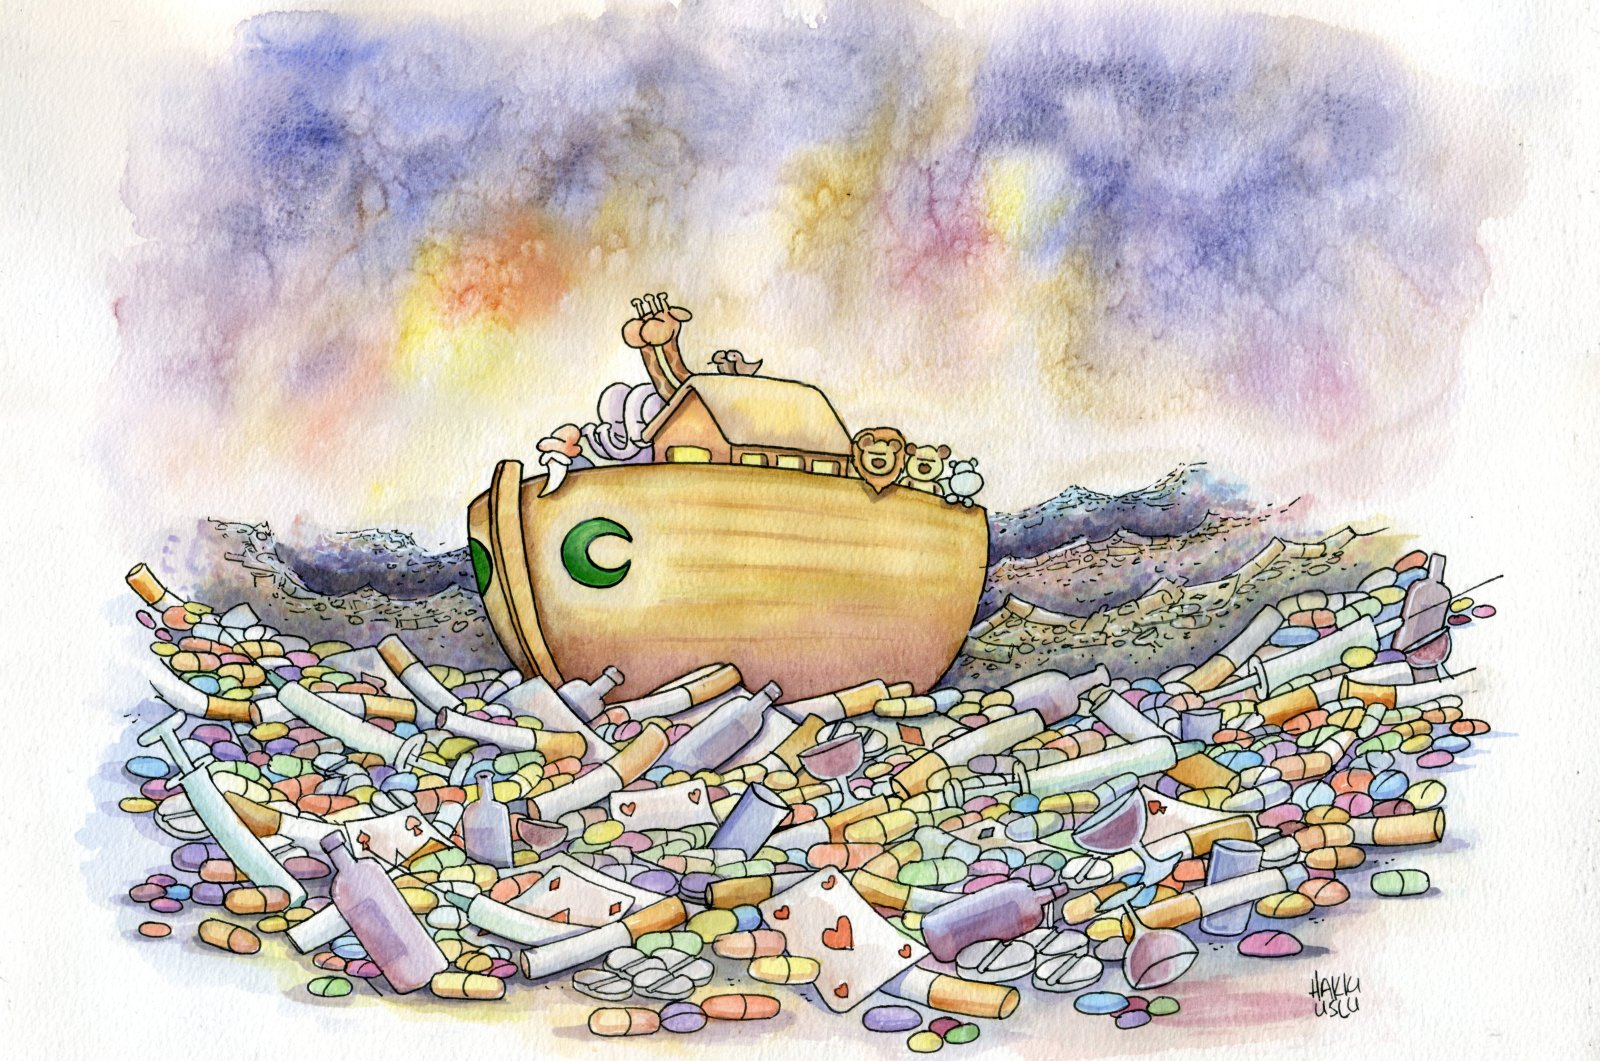 A cartoon by Hakkı Uslu for the International Green Crescent Cartoon Contest 2020.